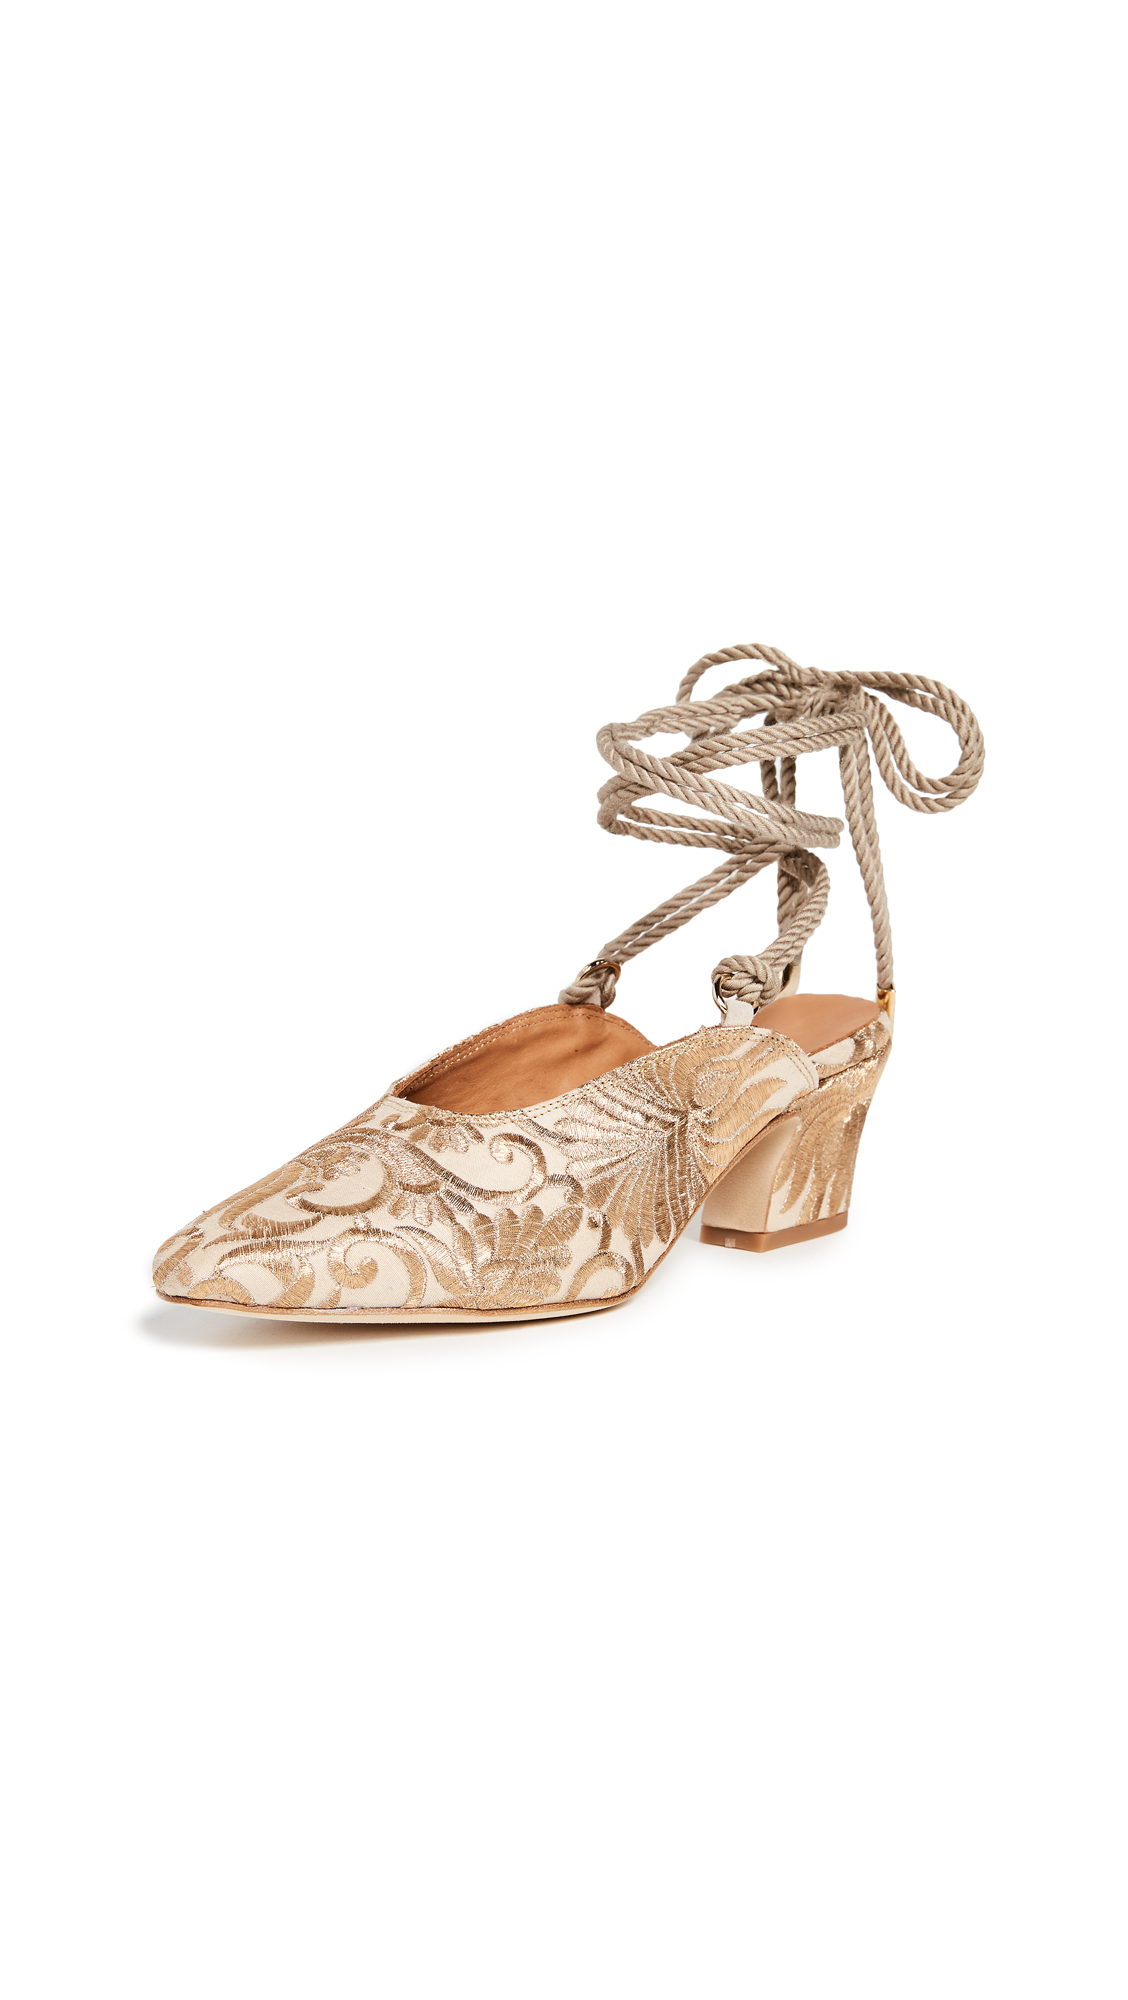 Miista Hope Pumps - Cream/Gold